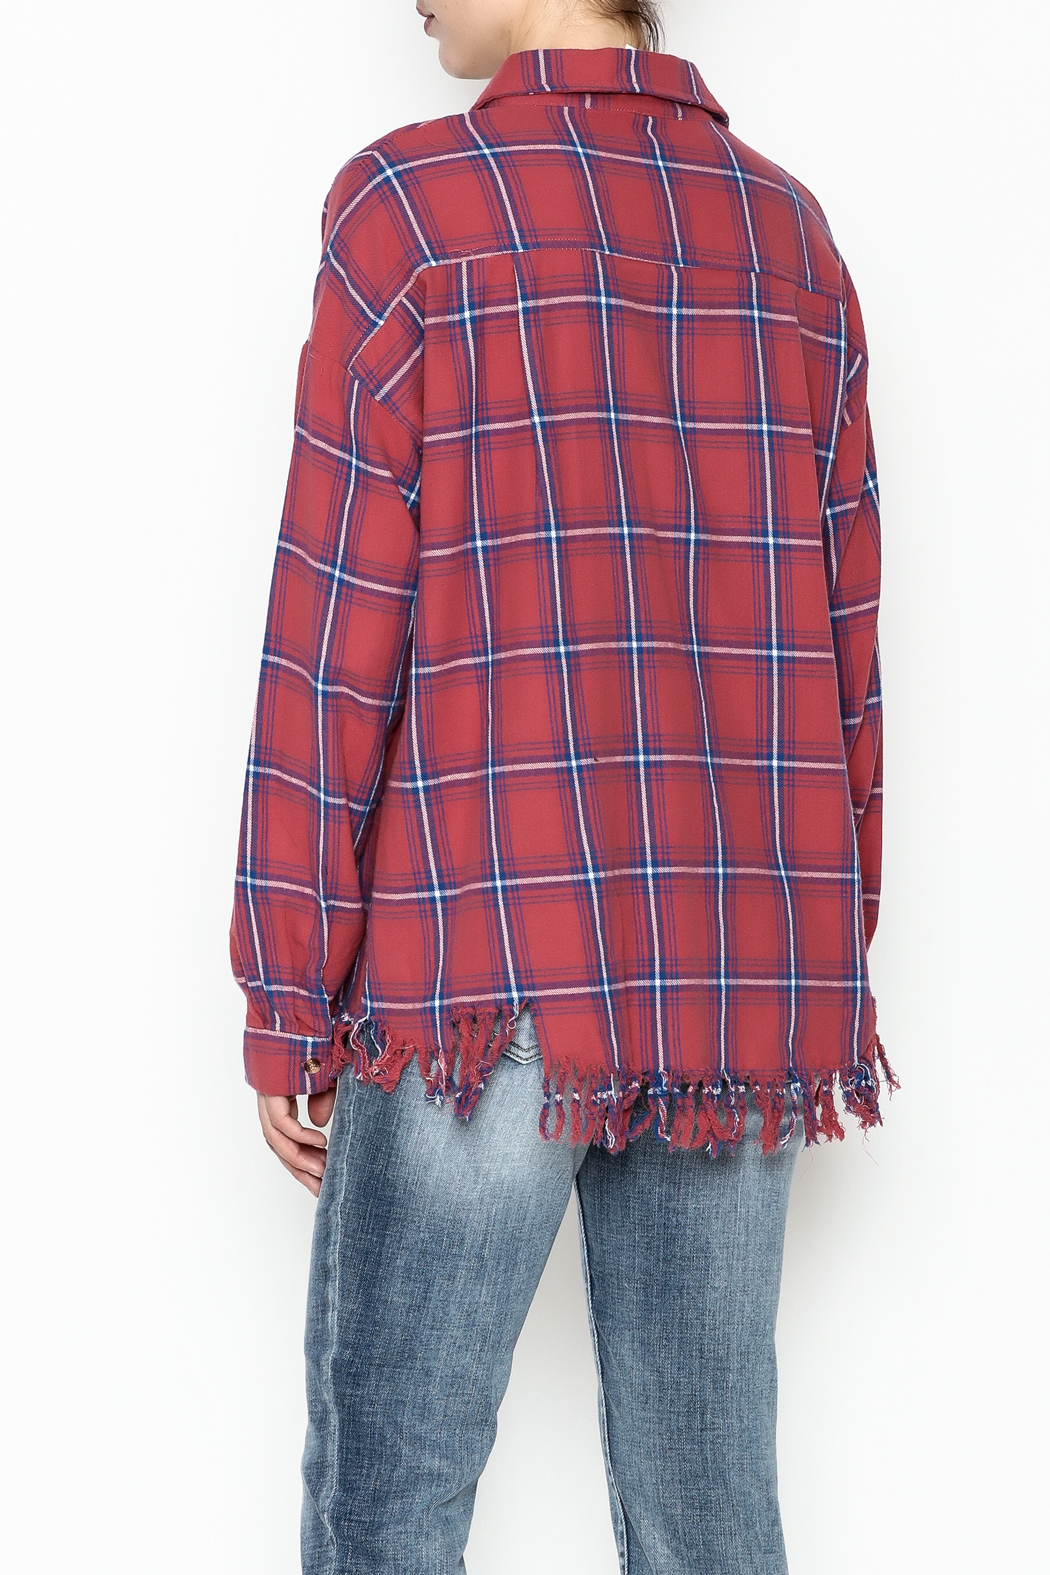 Flawless Distressed Plaid Shirt - Back Cropped Image